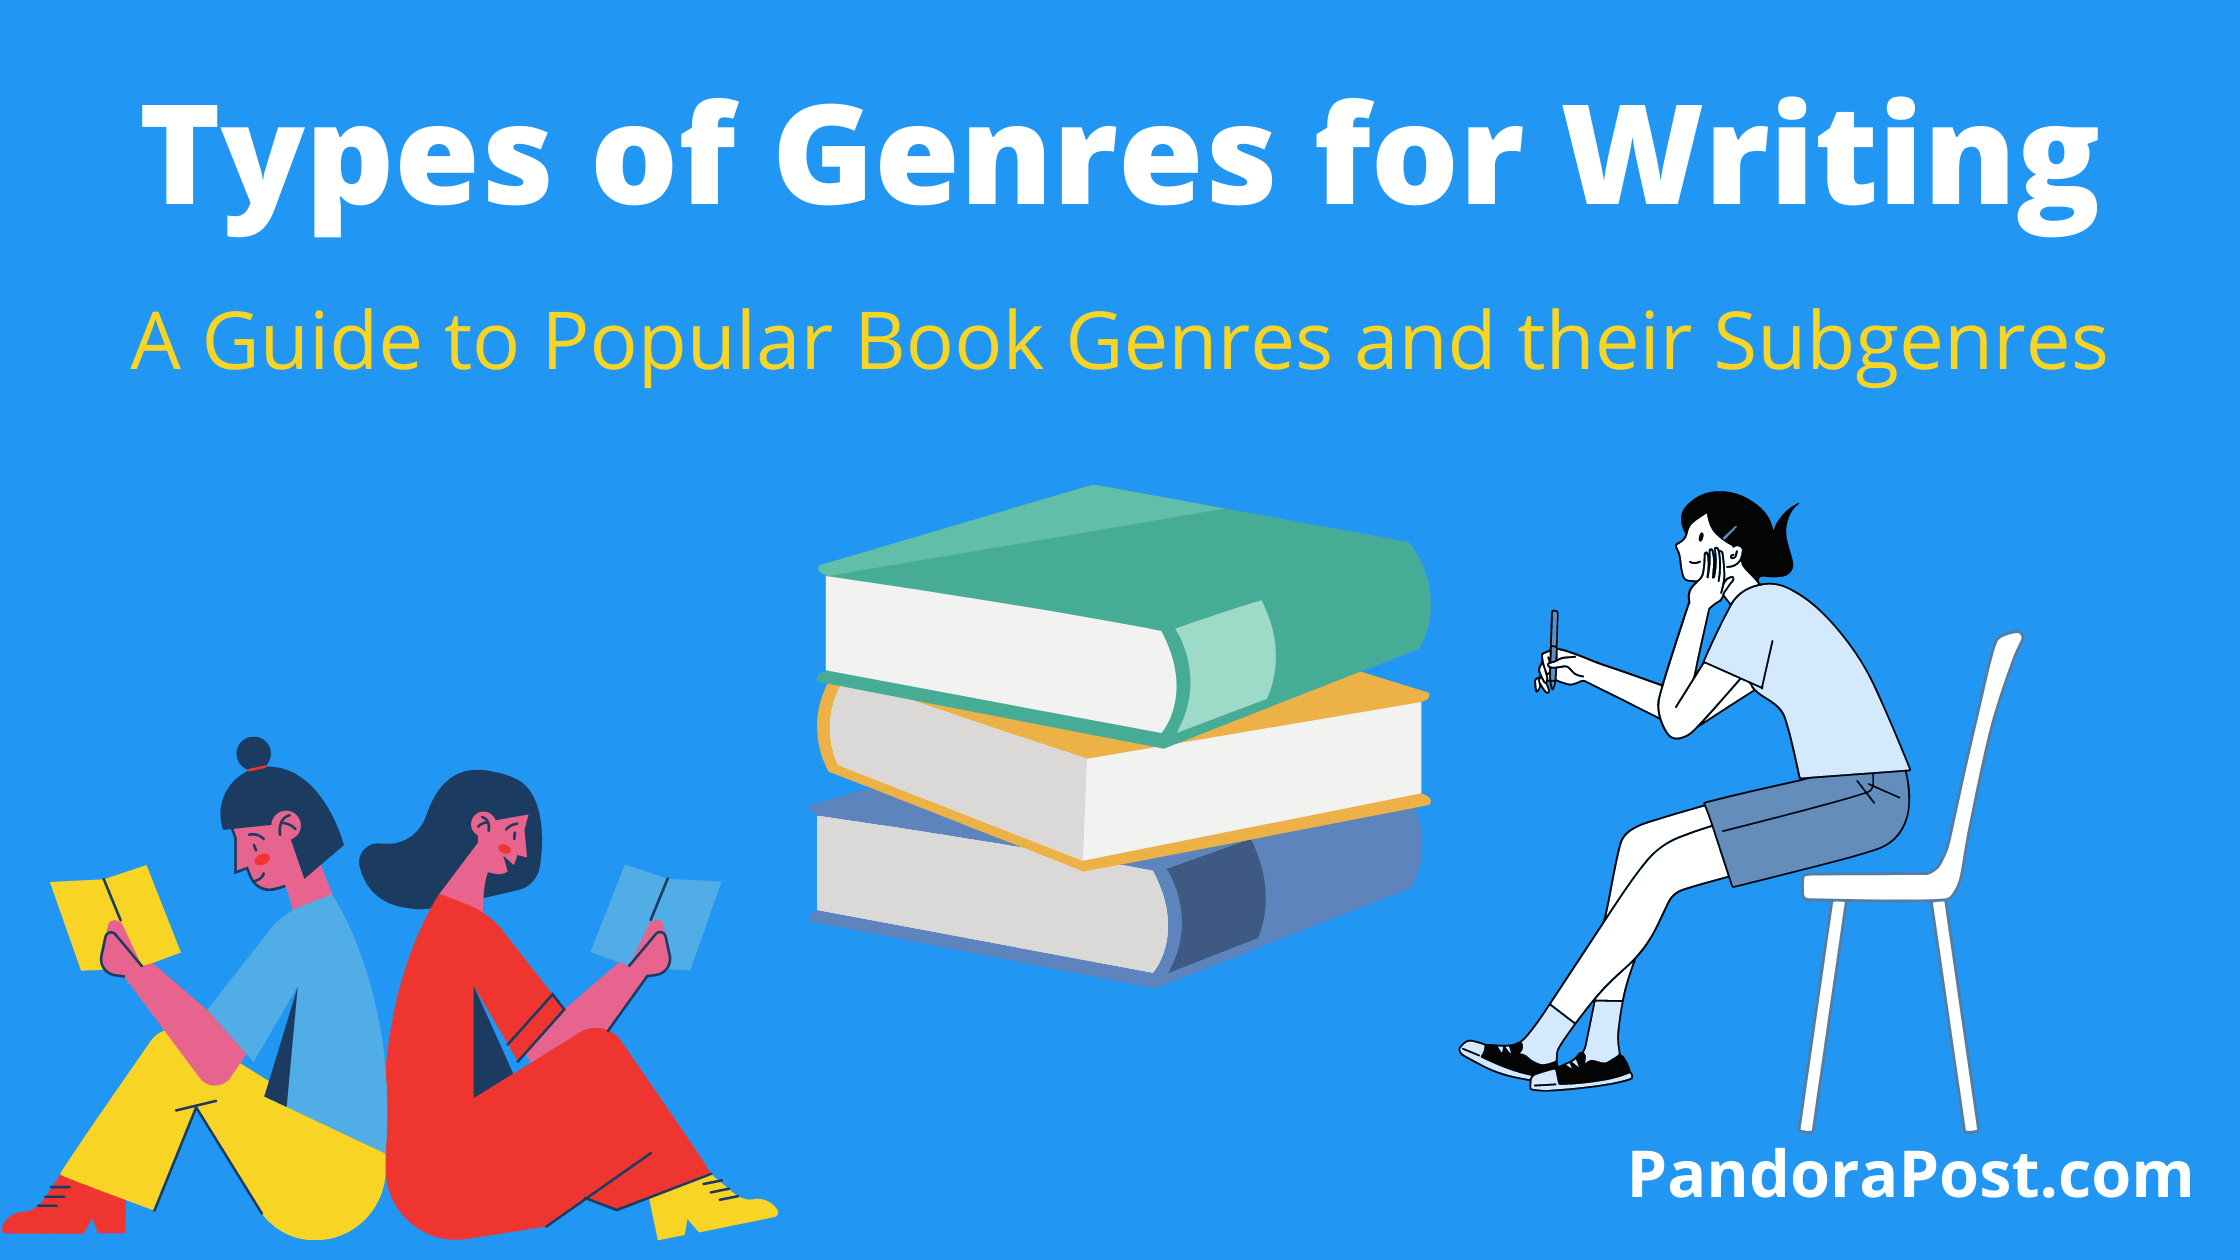 Types of Genres for Writing: A Guide to Popular Book Genres and Subgenres